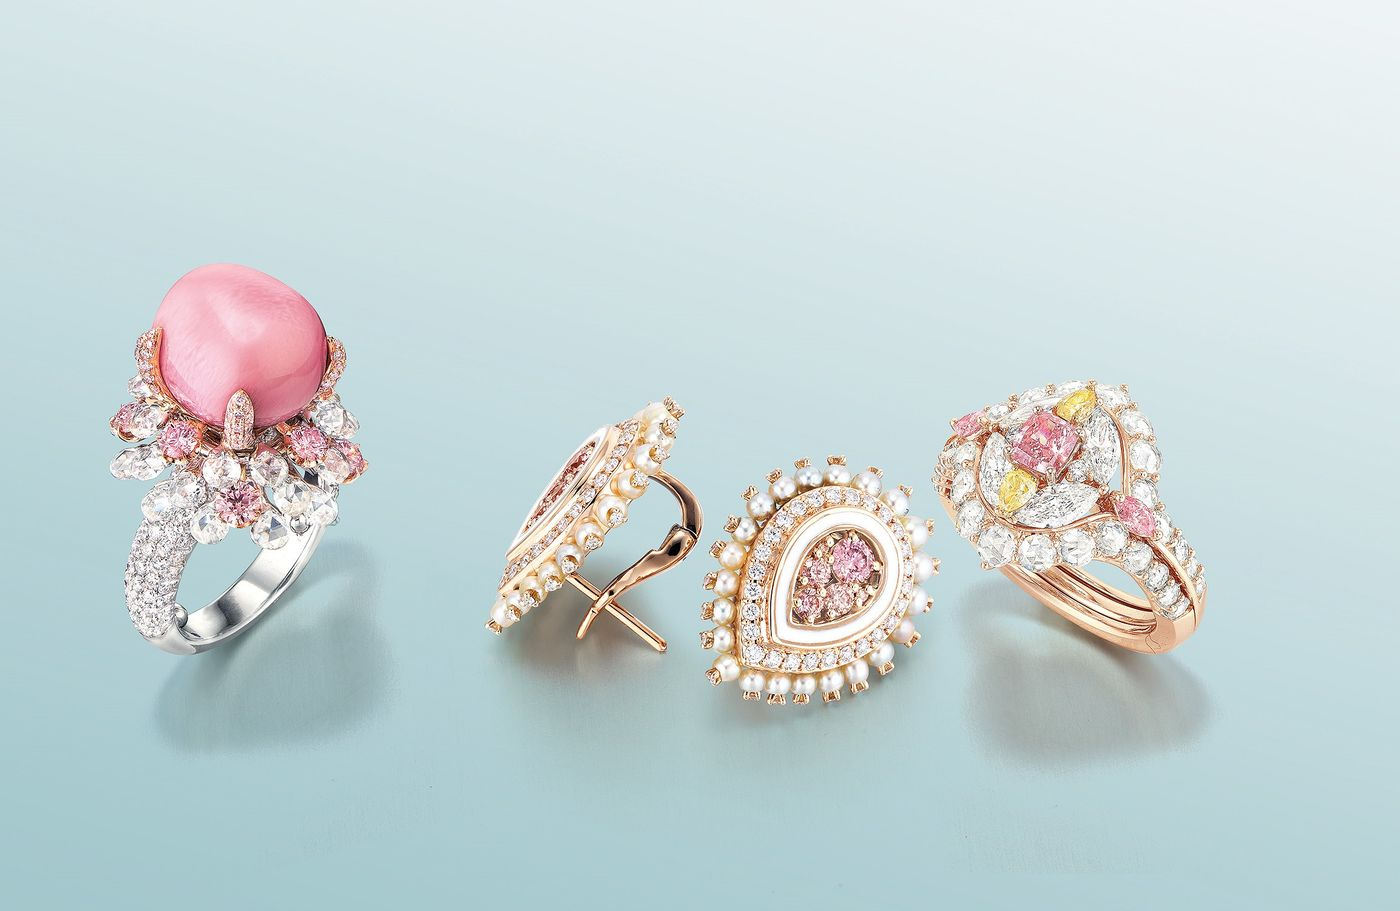 This season, Sarah Ho, Paige Parker and Karen Suen created bespoke Argyle pink diamond jewels for auction in Hong Kong.